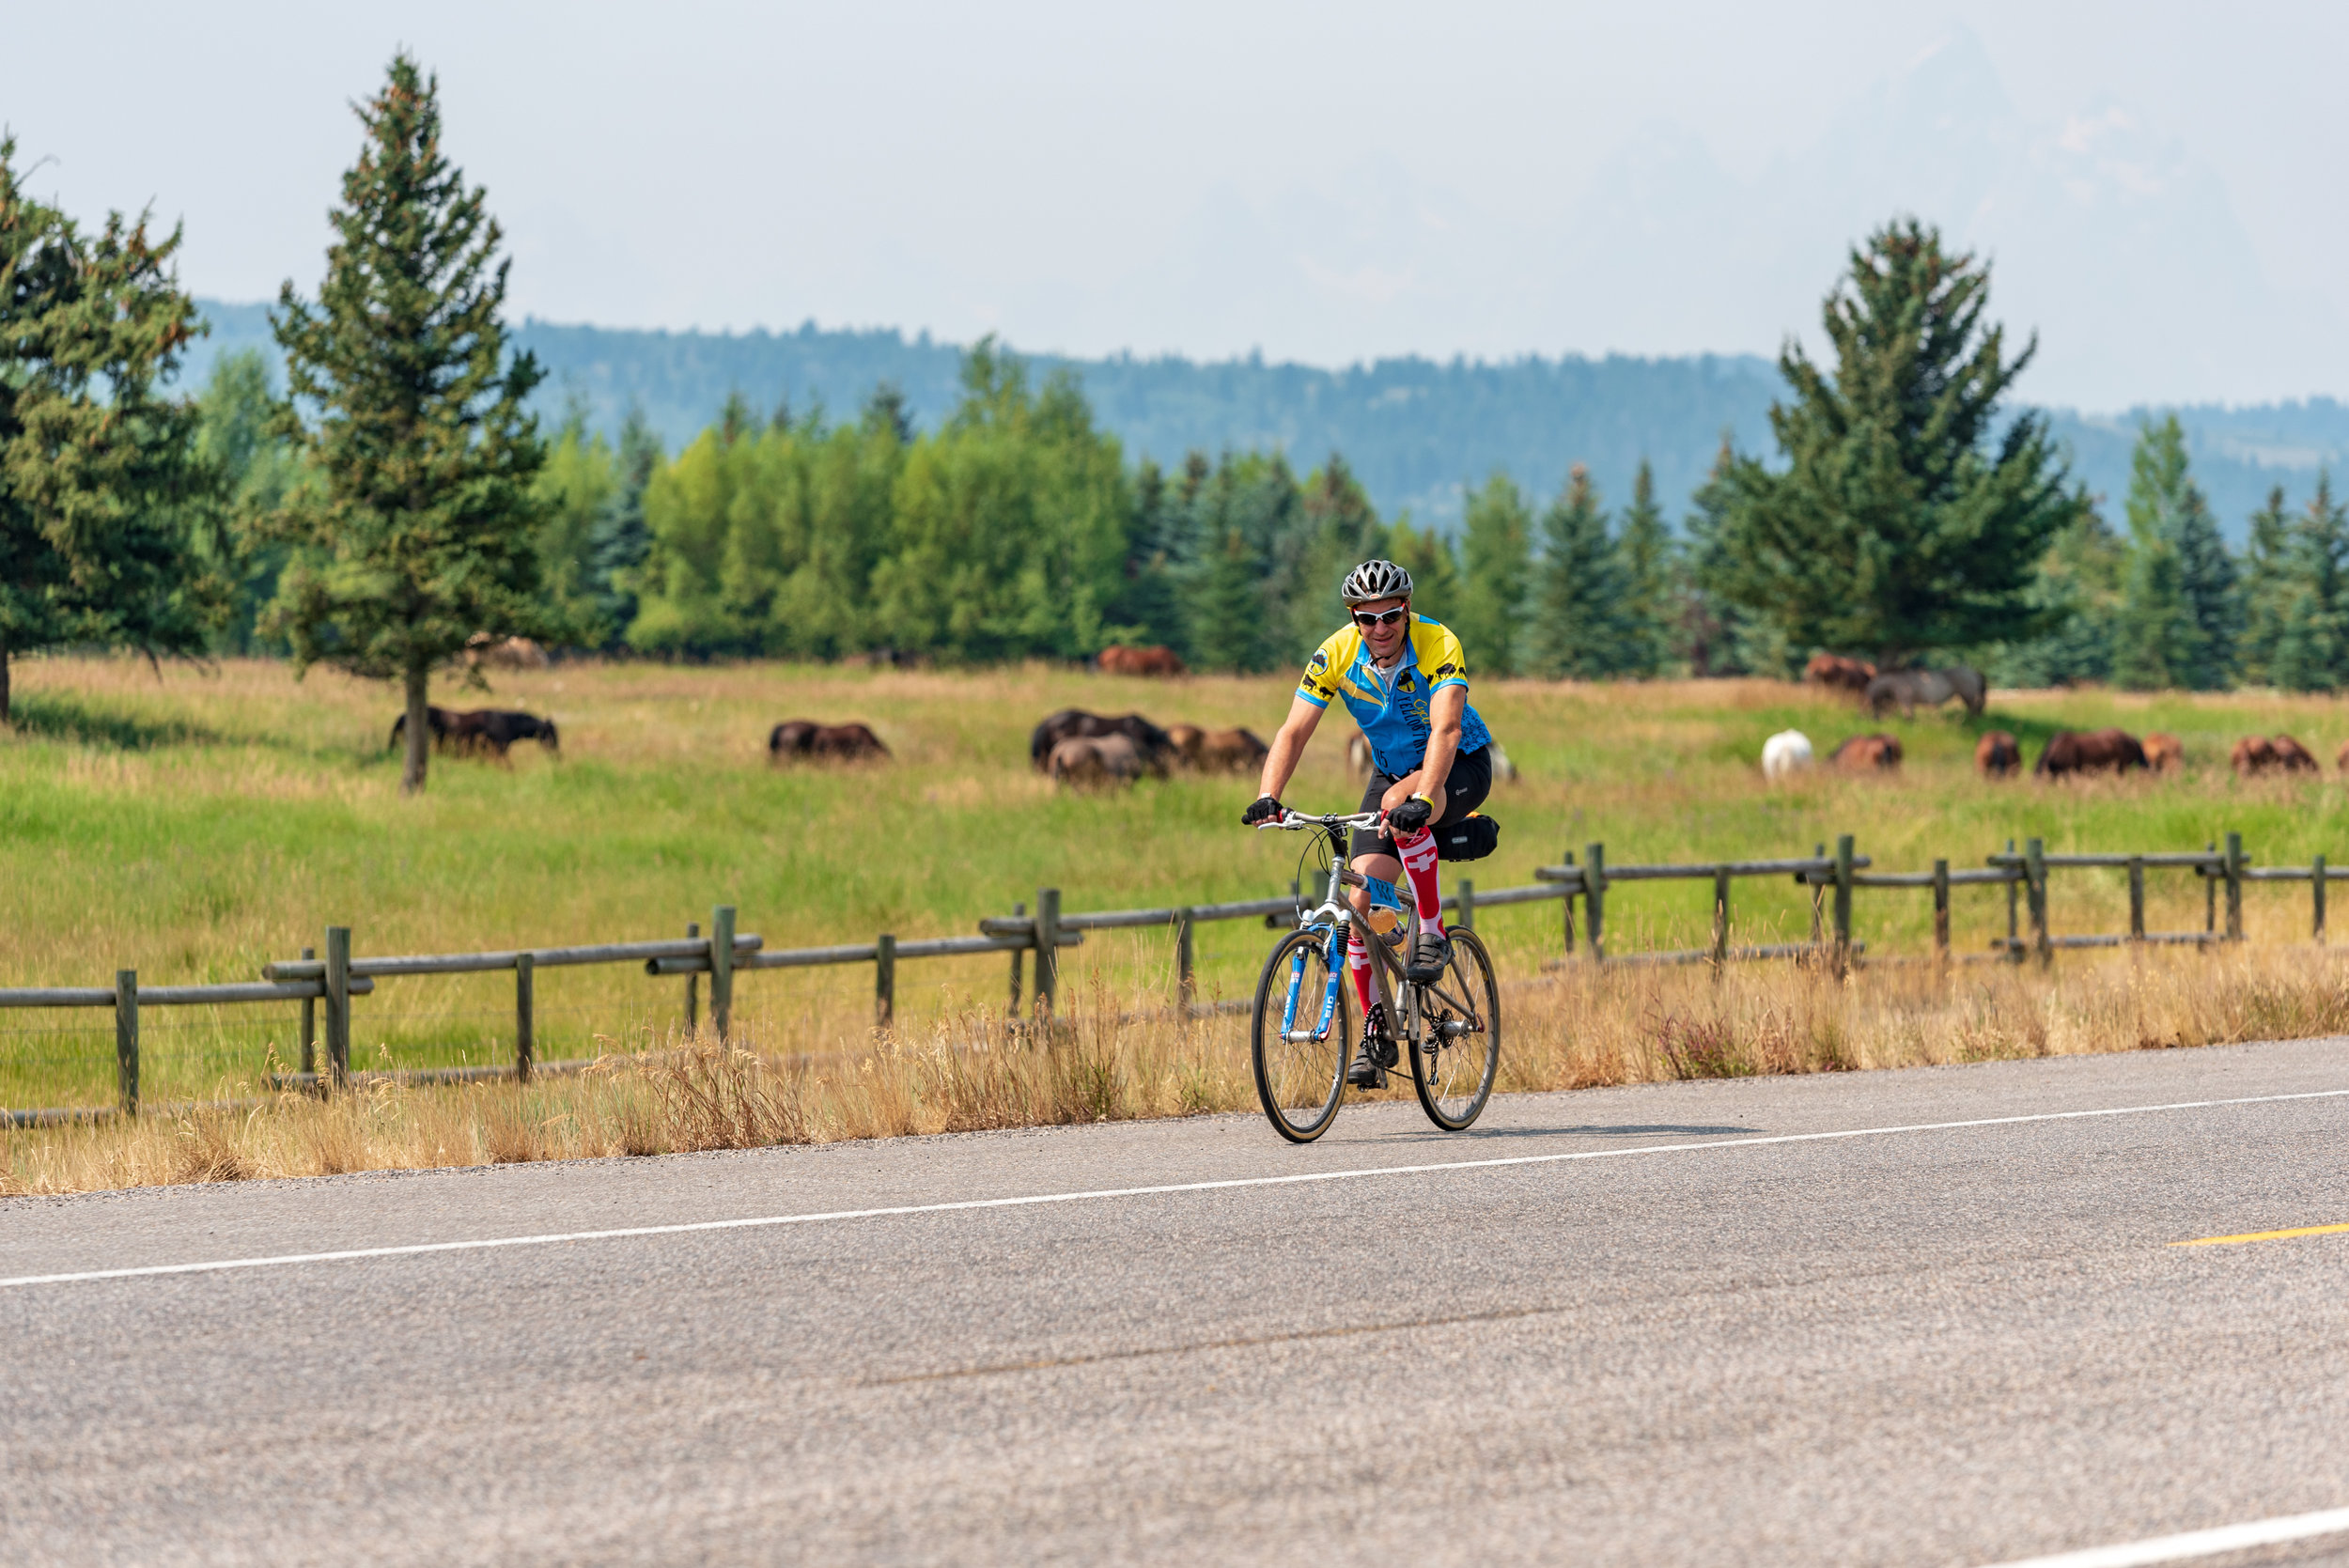 A CGY cyclist from Switzerland makes his way through Togwotee Pass - an area of the Greater Yellowstone Ecosystem outside of Teton and Yellowstone National Park where people typically see wildlife just off the highway. Nickolas Olson Photography for Cycle Greater Yellowstone